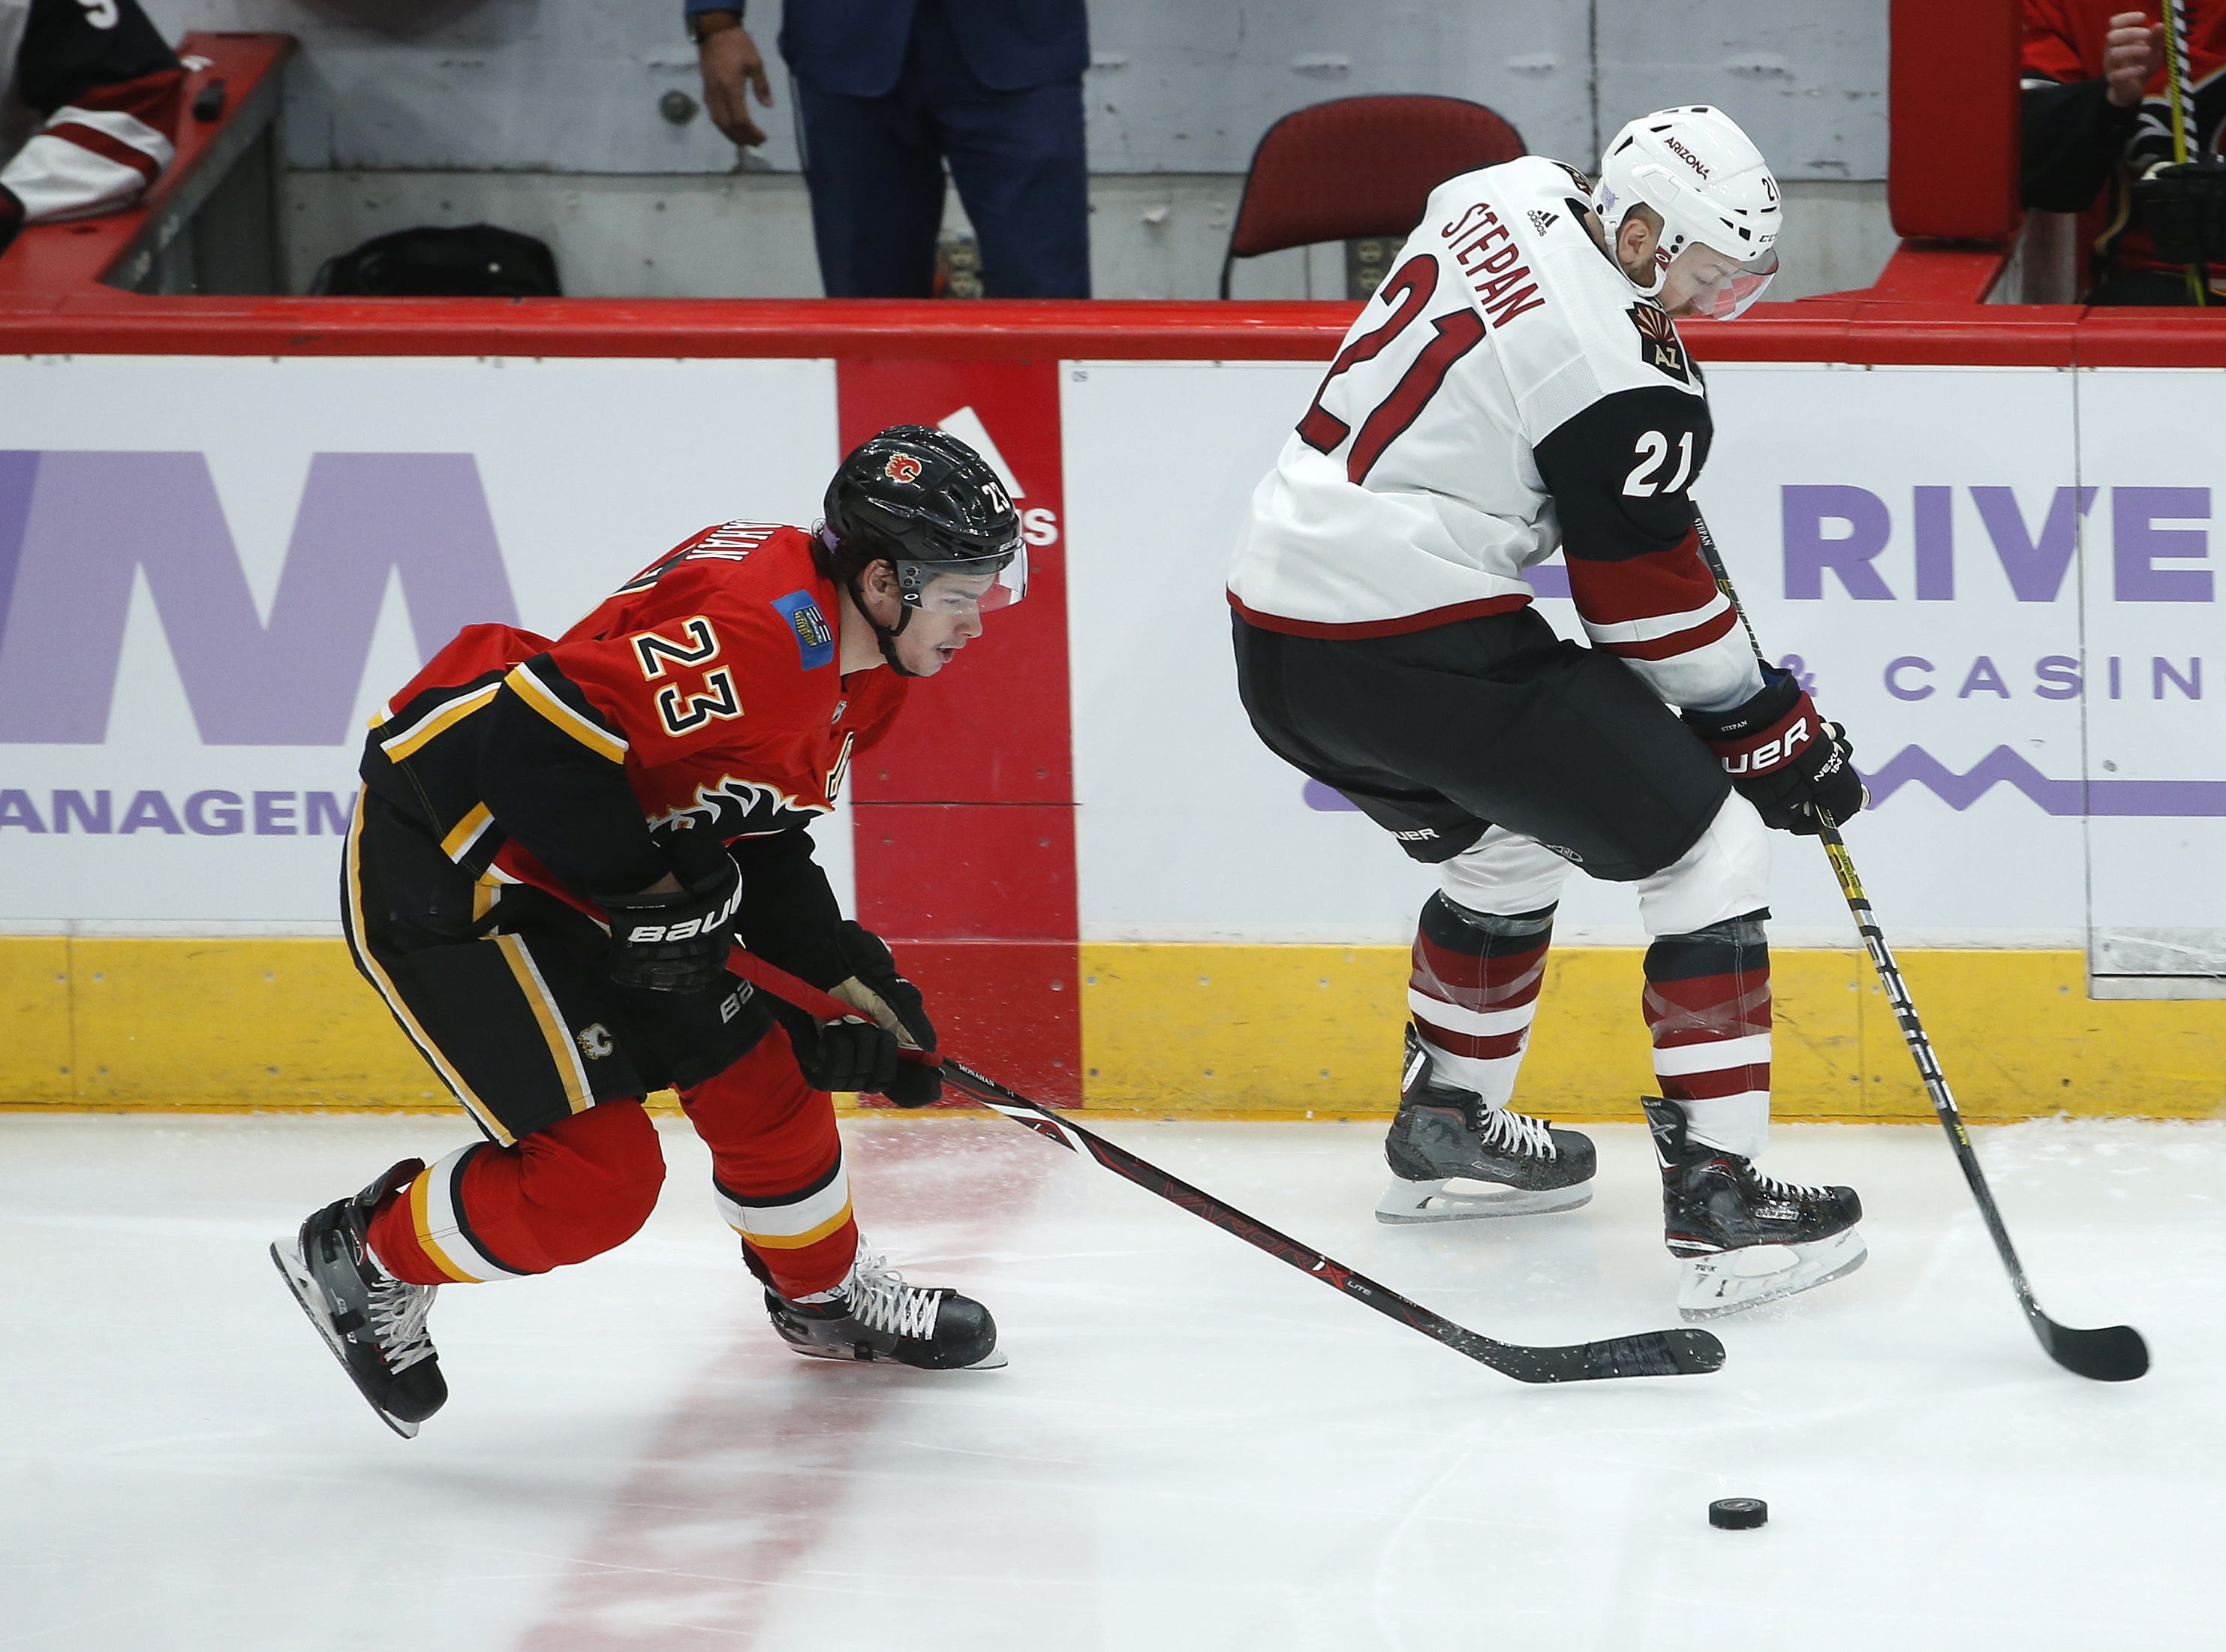 Coyotes' Derek Stepan (21) skates up ice against Flames' Sean Monahan (23) during the first period at Gila River Arena in Glendale, Ariz. on November 25, 2018.